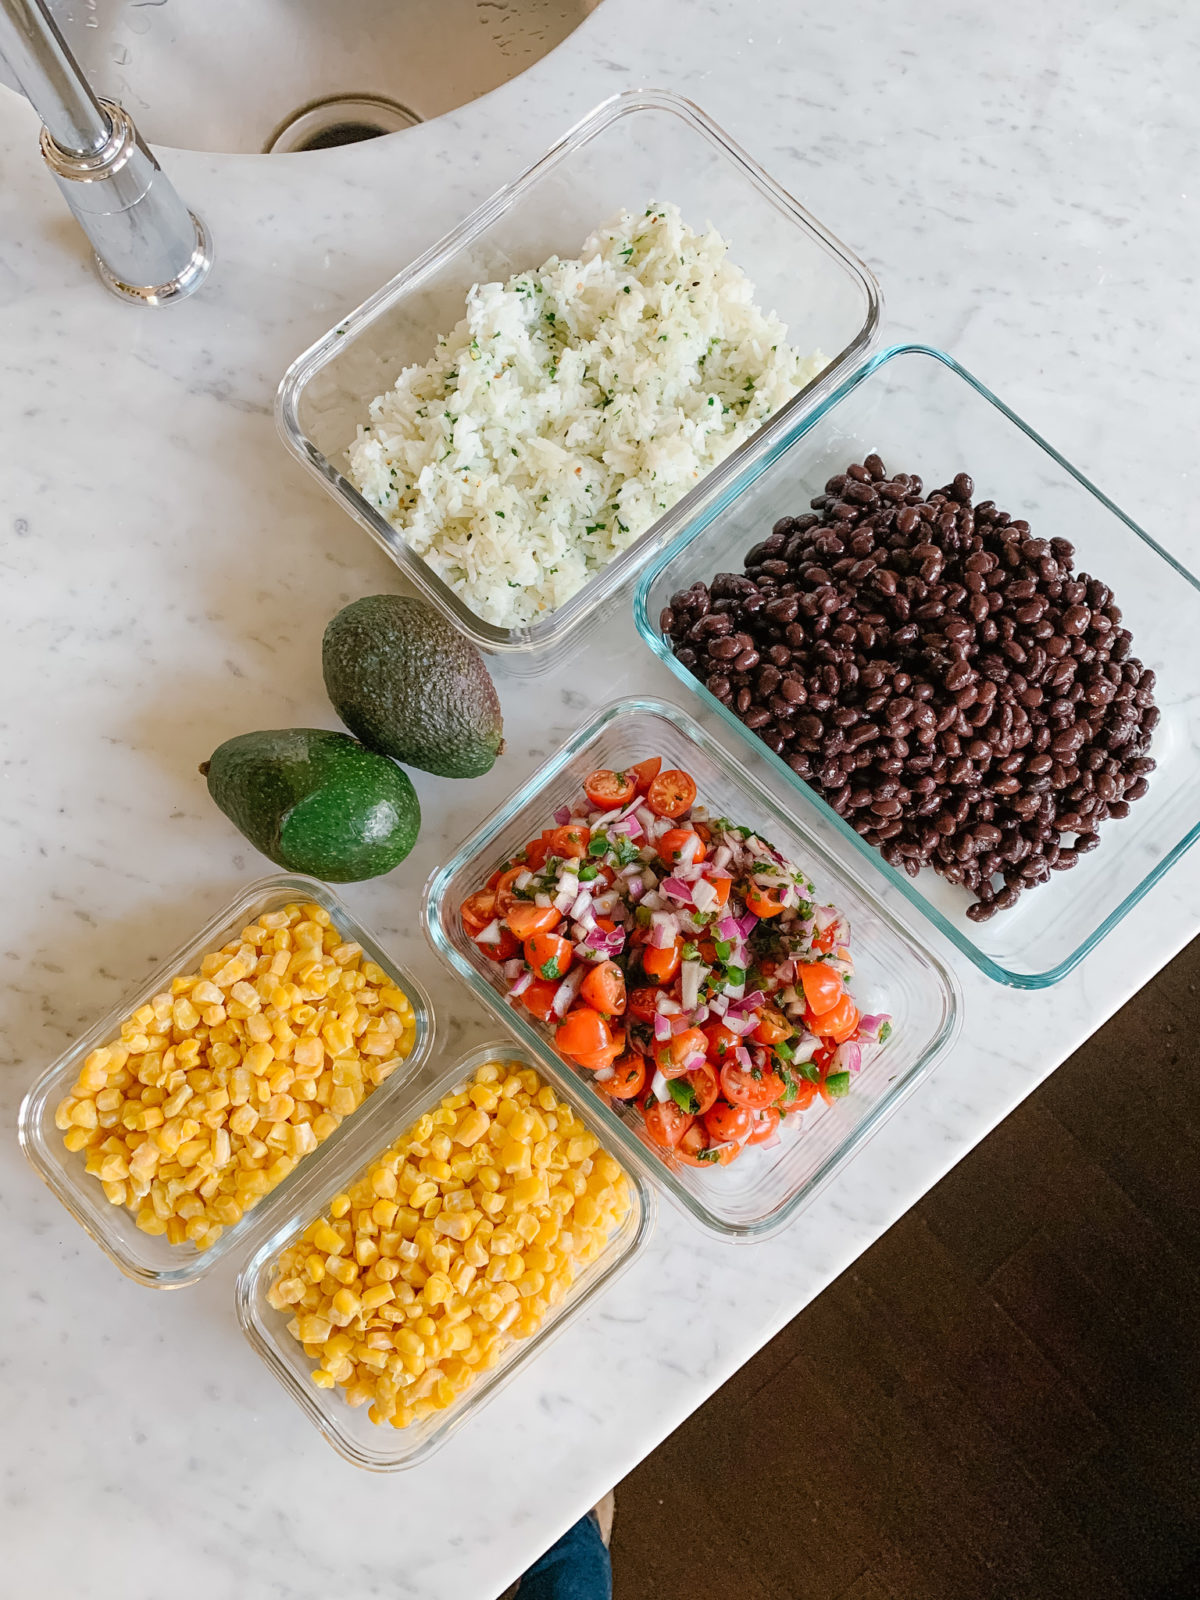 Healthy Savory Breakfast & Tex Mex Burrito Bowl